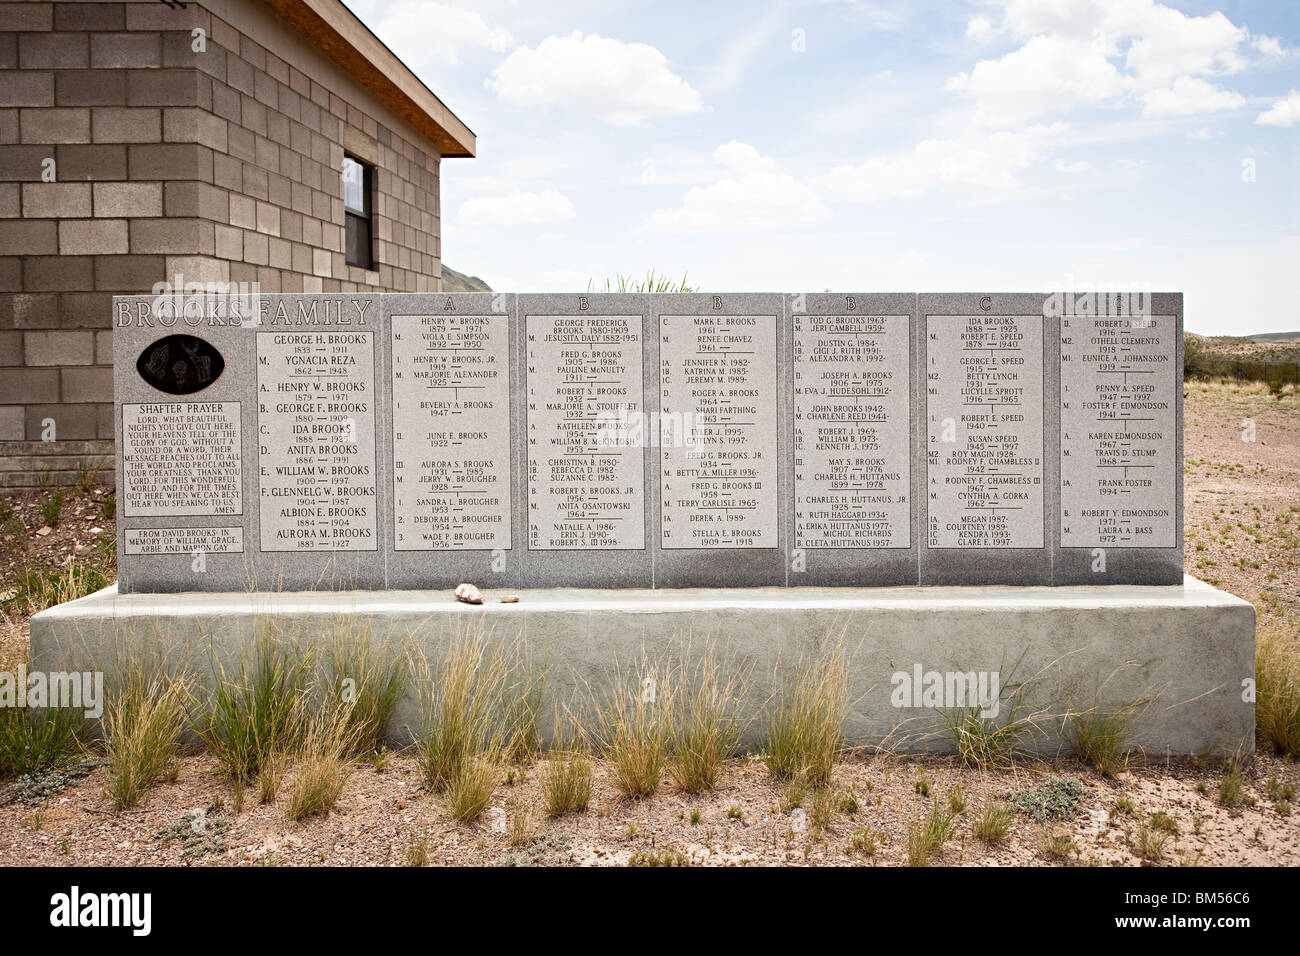 Memorial showing genealogy of Brooks family Concordia cemetery Shafter silver mining ghost town Texas USA - Stock Image